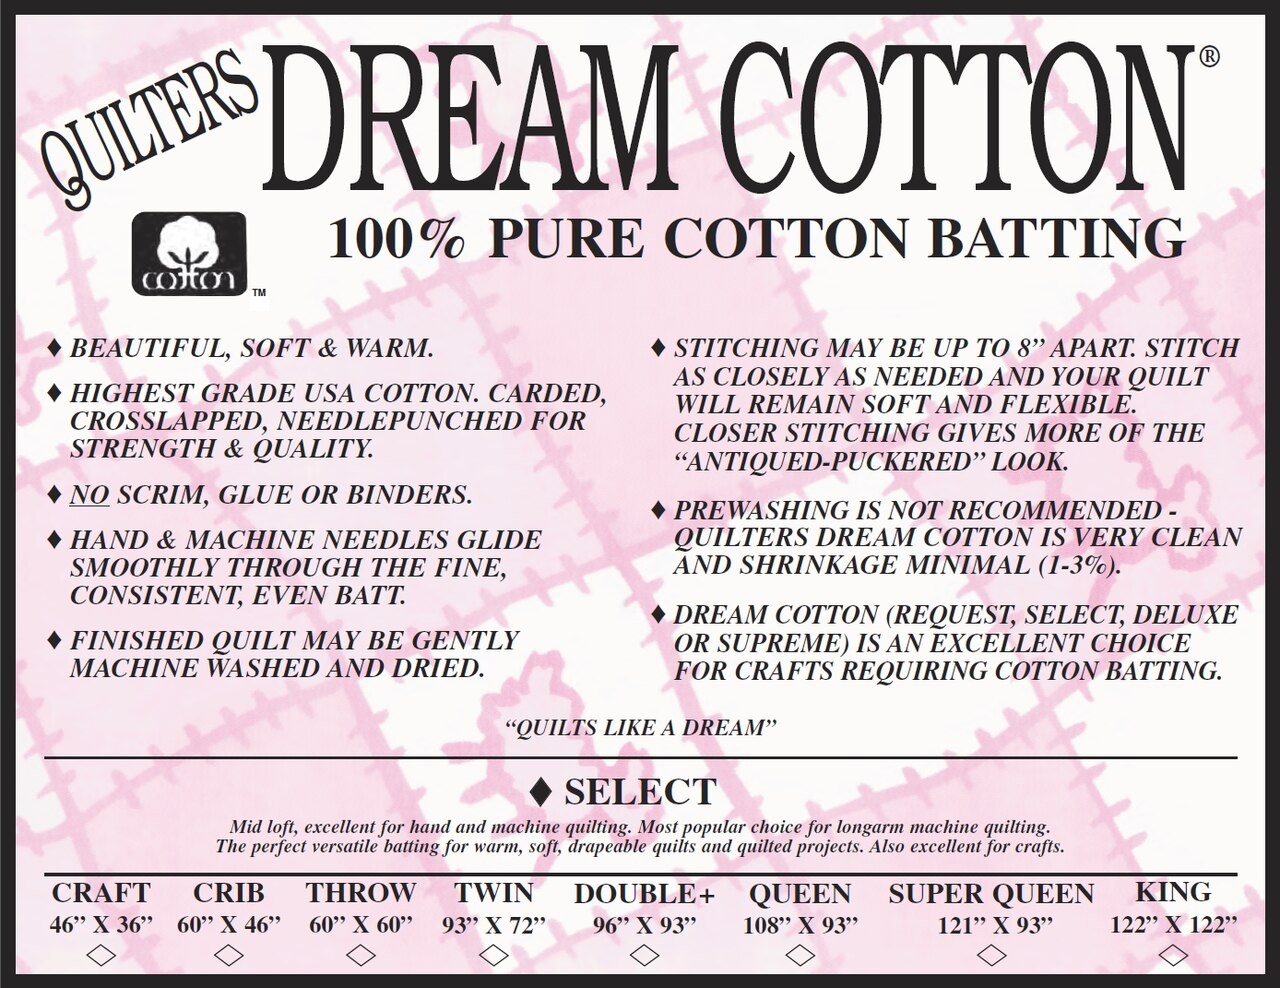 Quilters Dream Cotton - Craft Batt